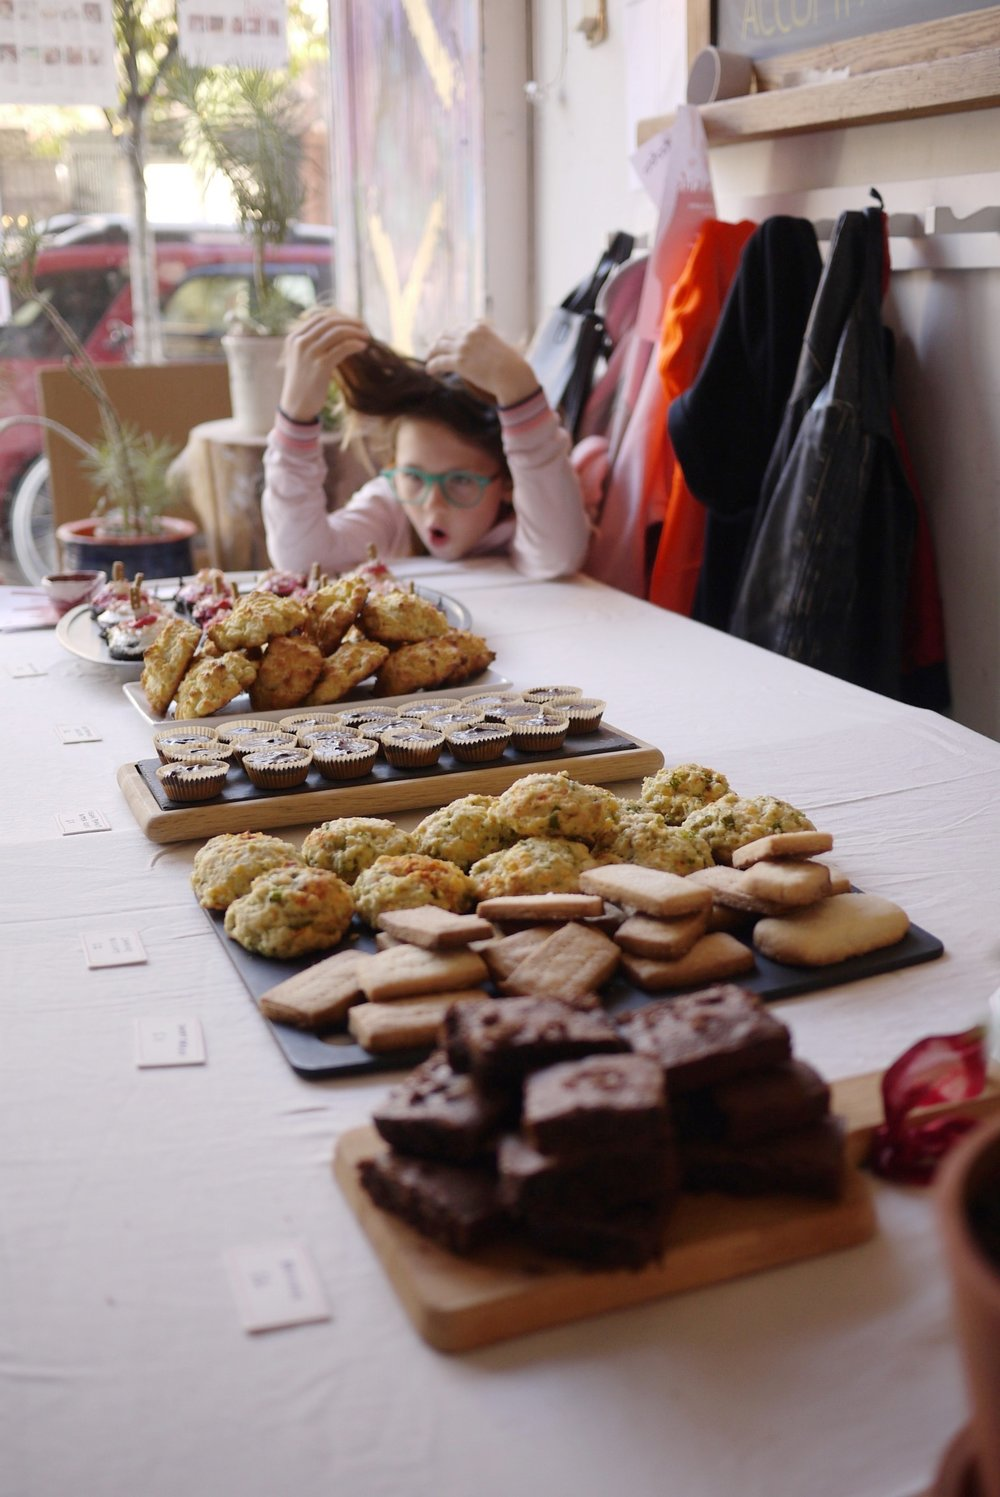 Some of the delicious baked goods that our members graciously brought for the event. Kika's mood was my mood all day.